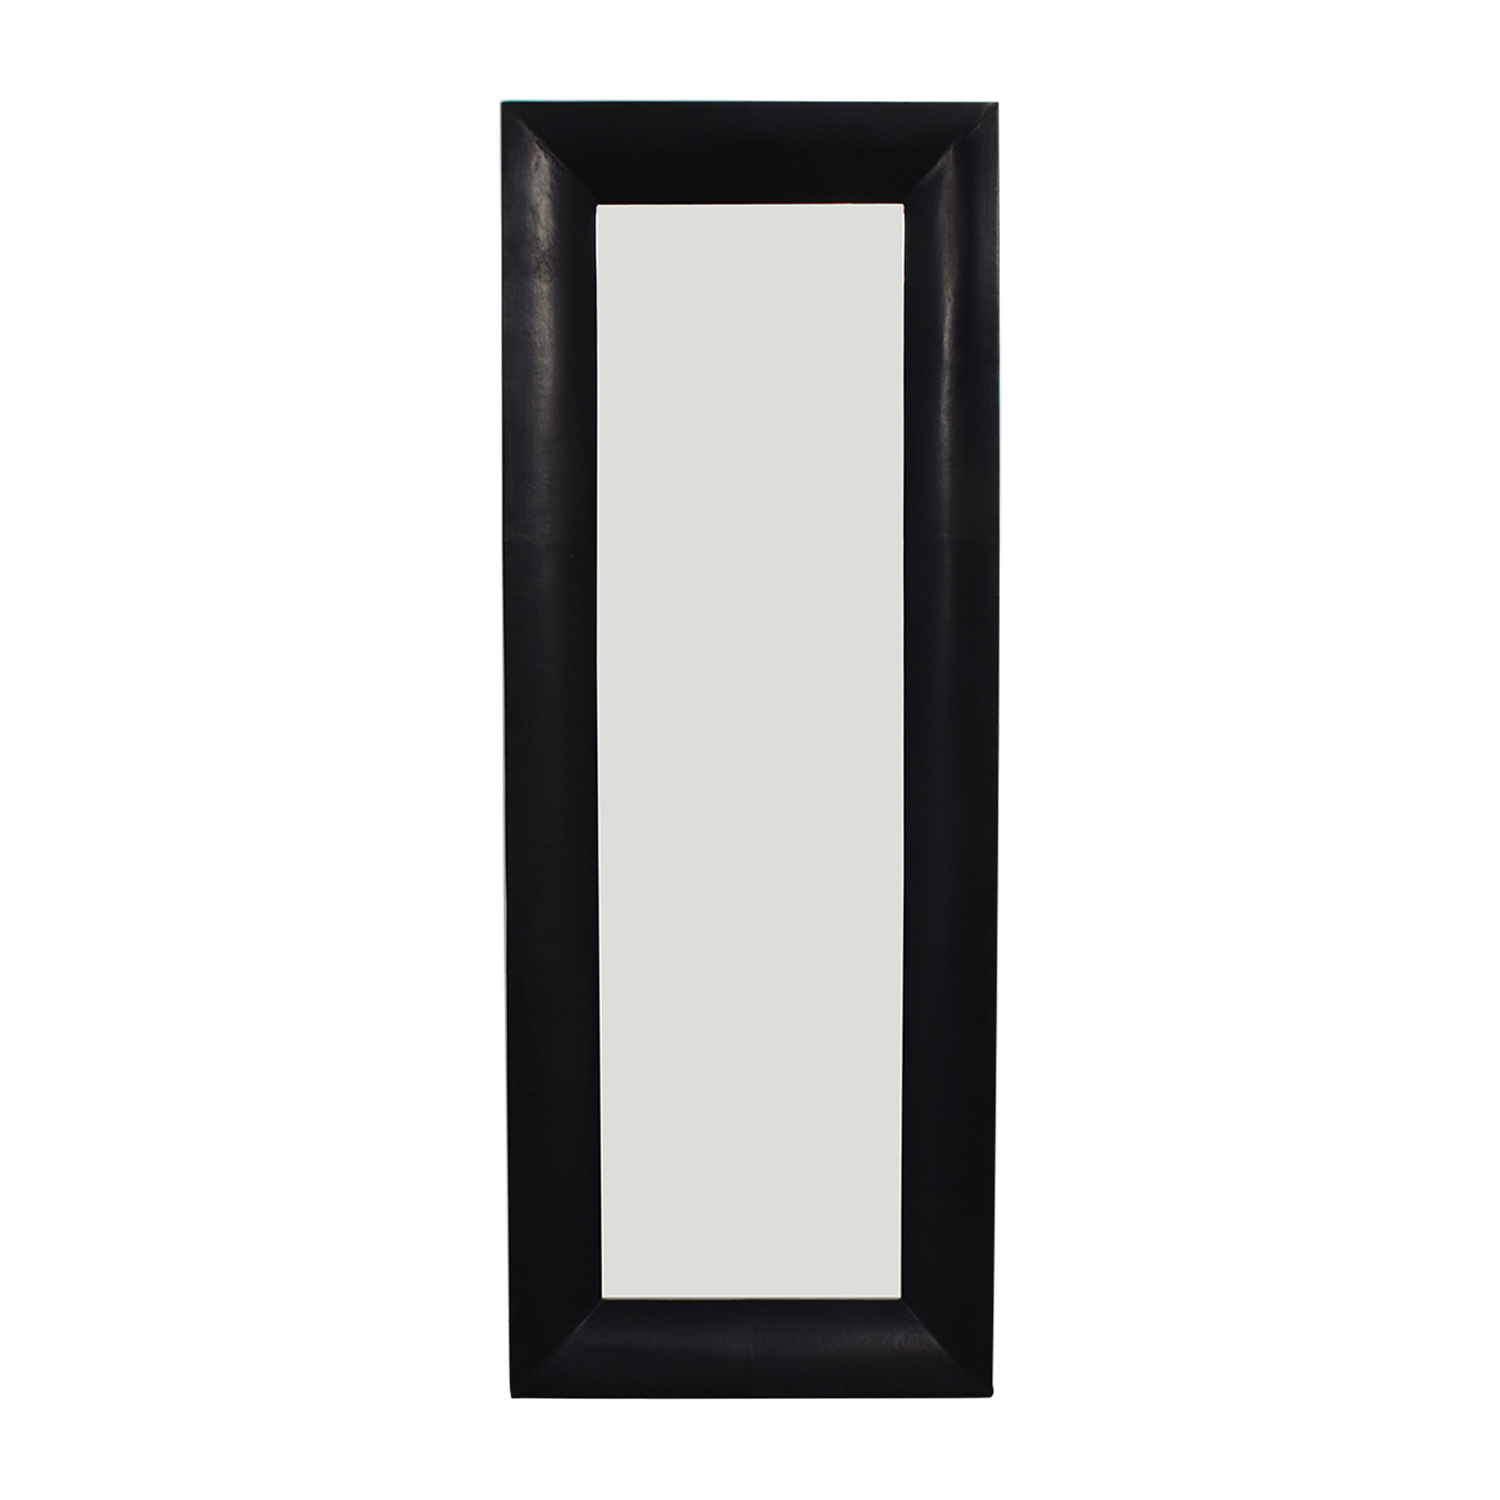 Crate & Barrel Crate & Barrel Maxx Black Floor Mirror on sale